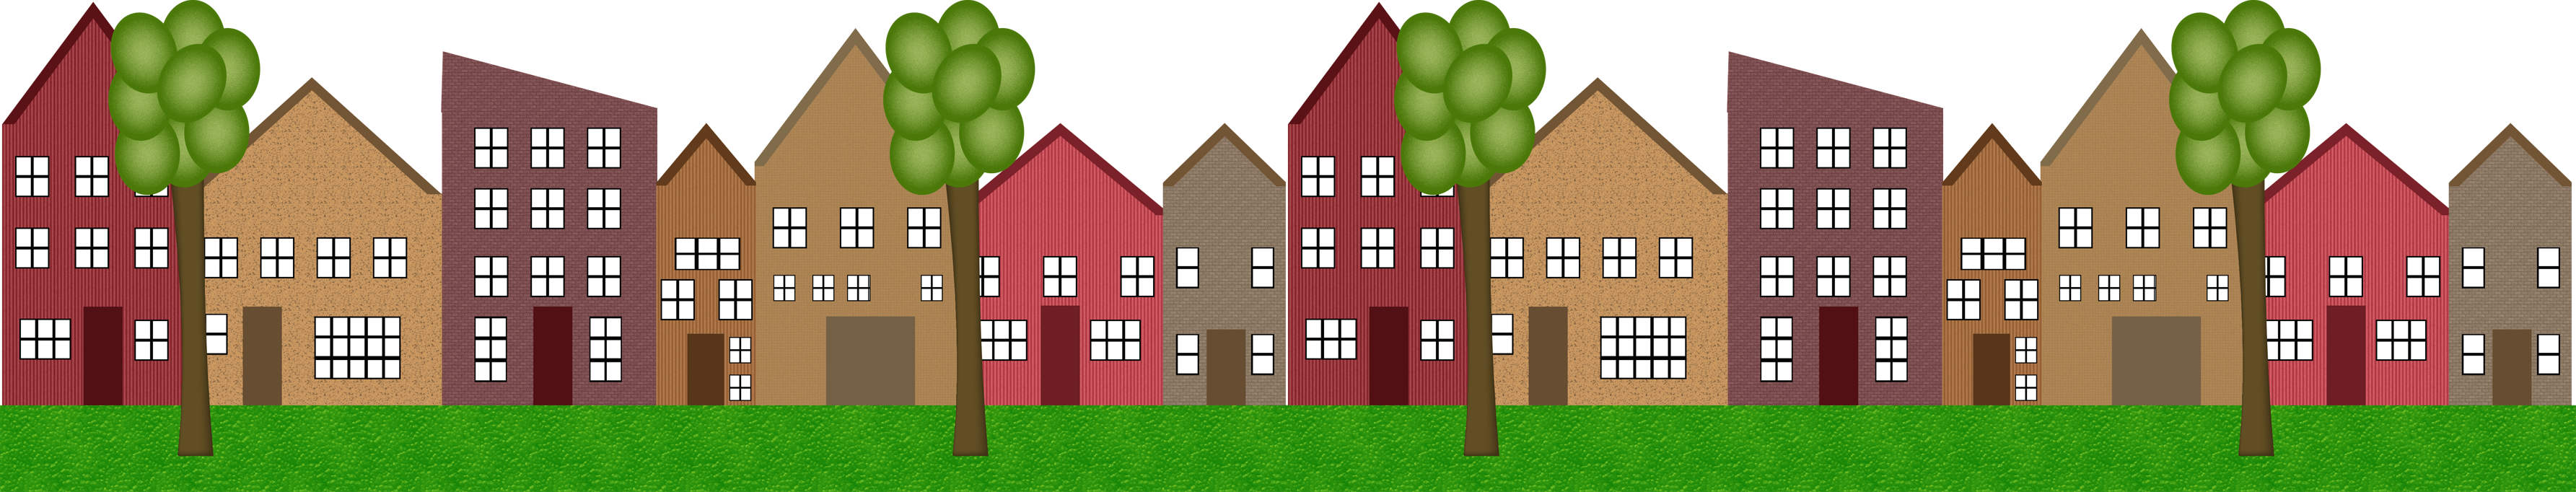 Row houses clipart clip art free stock Clip Art Of Homes In A Row Clipart - Clipart Kid clip art free stock